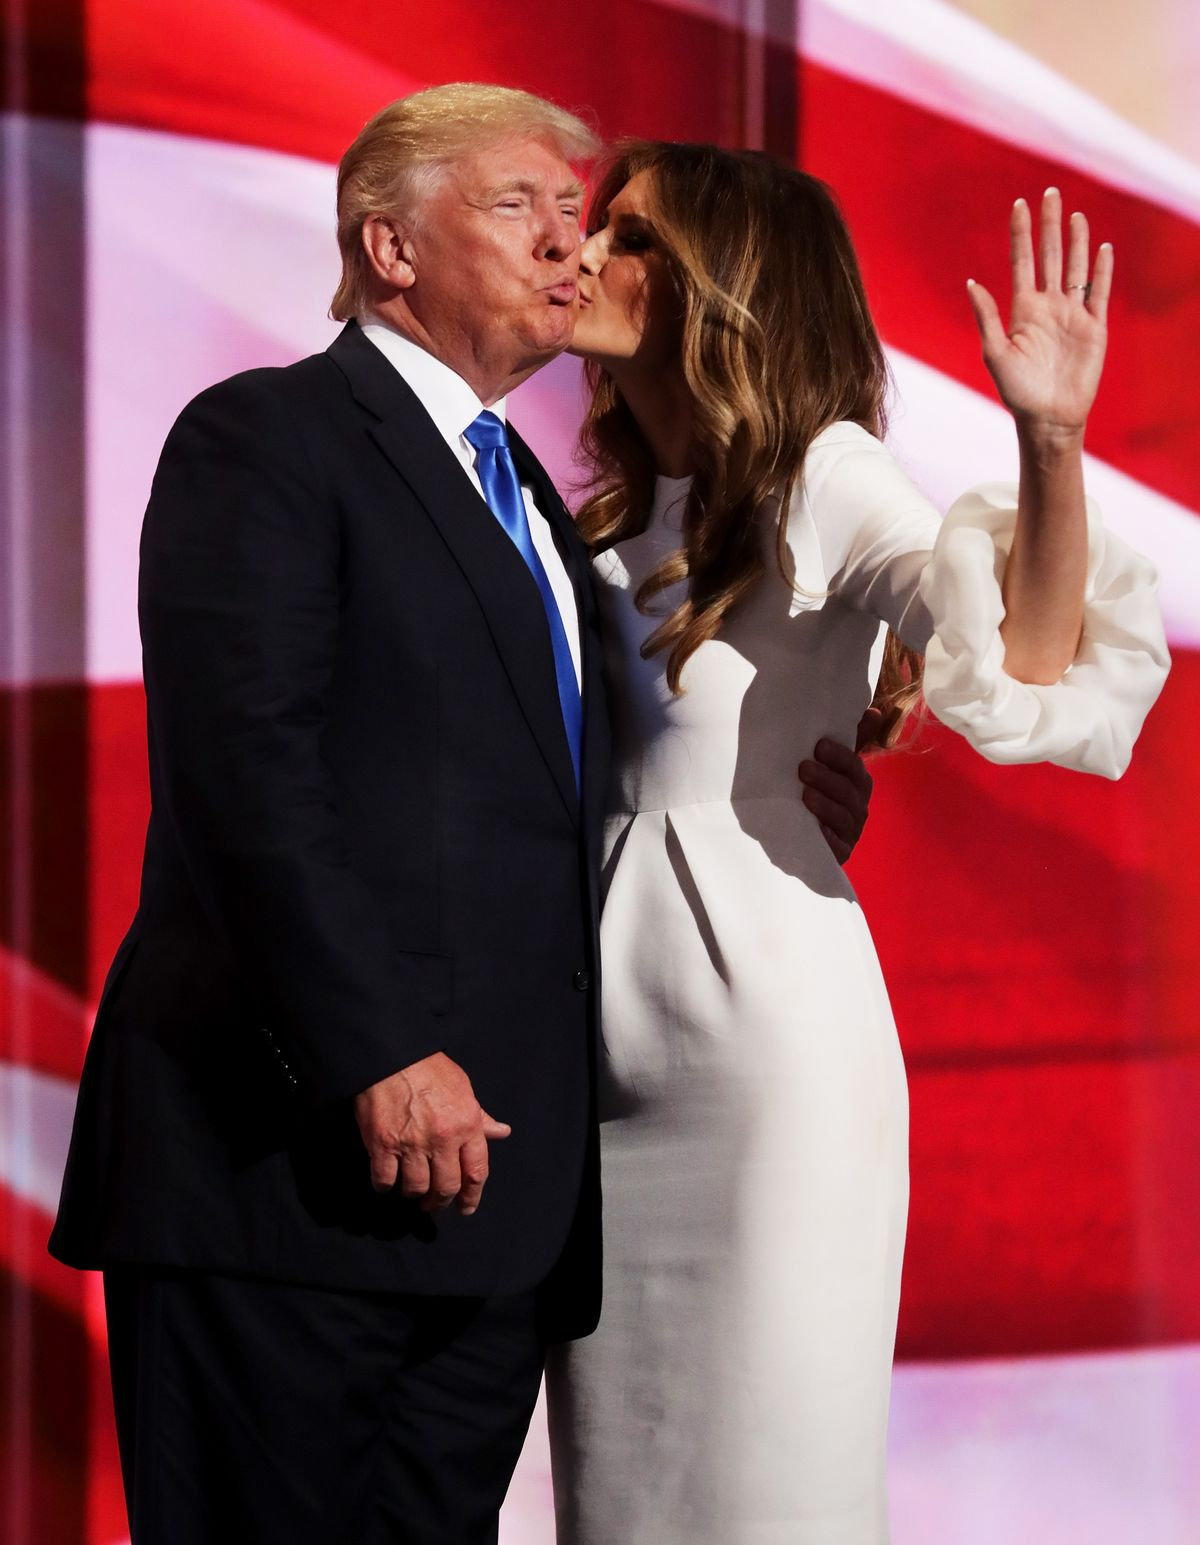 Melania Trump kisses Donald Trump at the Republican National Convention on July 18, 2016, in Cleveland, Ohio   Photo: Chip Somodevilla/Getty Images